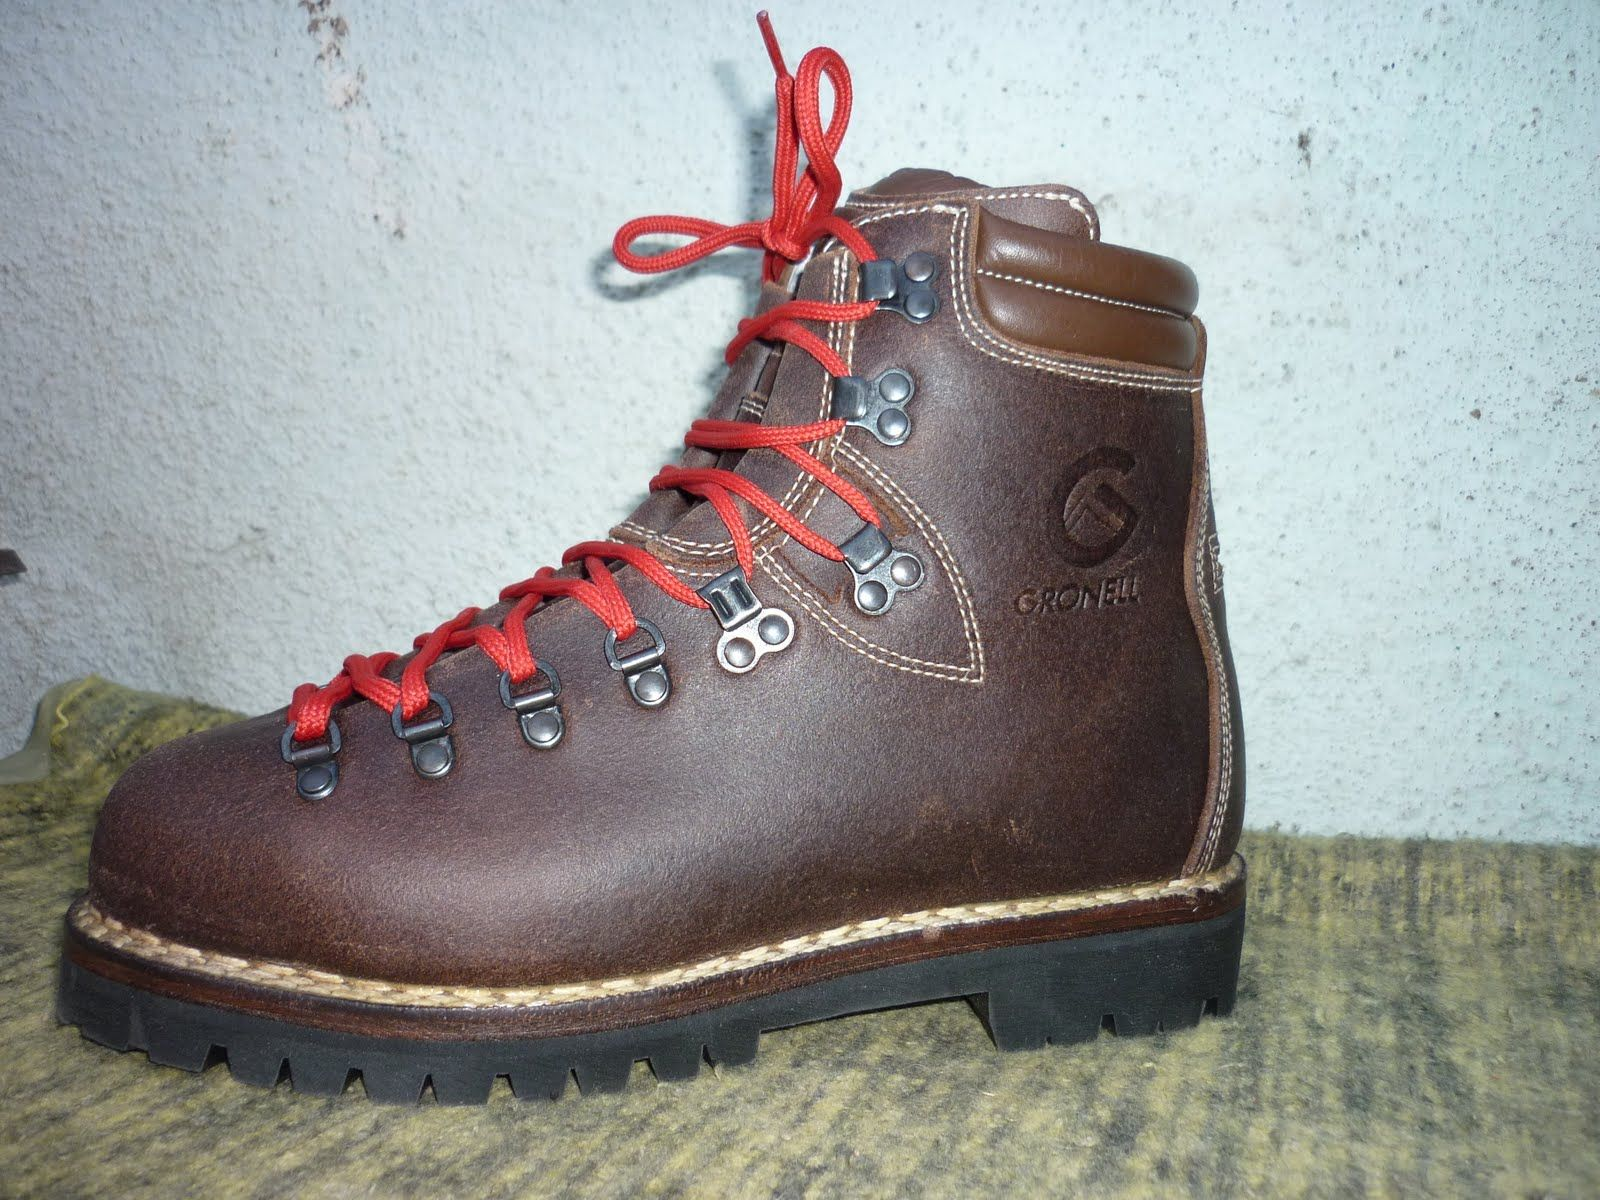 Handmade Italian hiking boots from Gronell. Double stitched Norwegian welt  construction that will last a